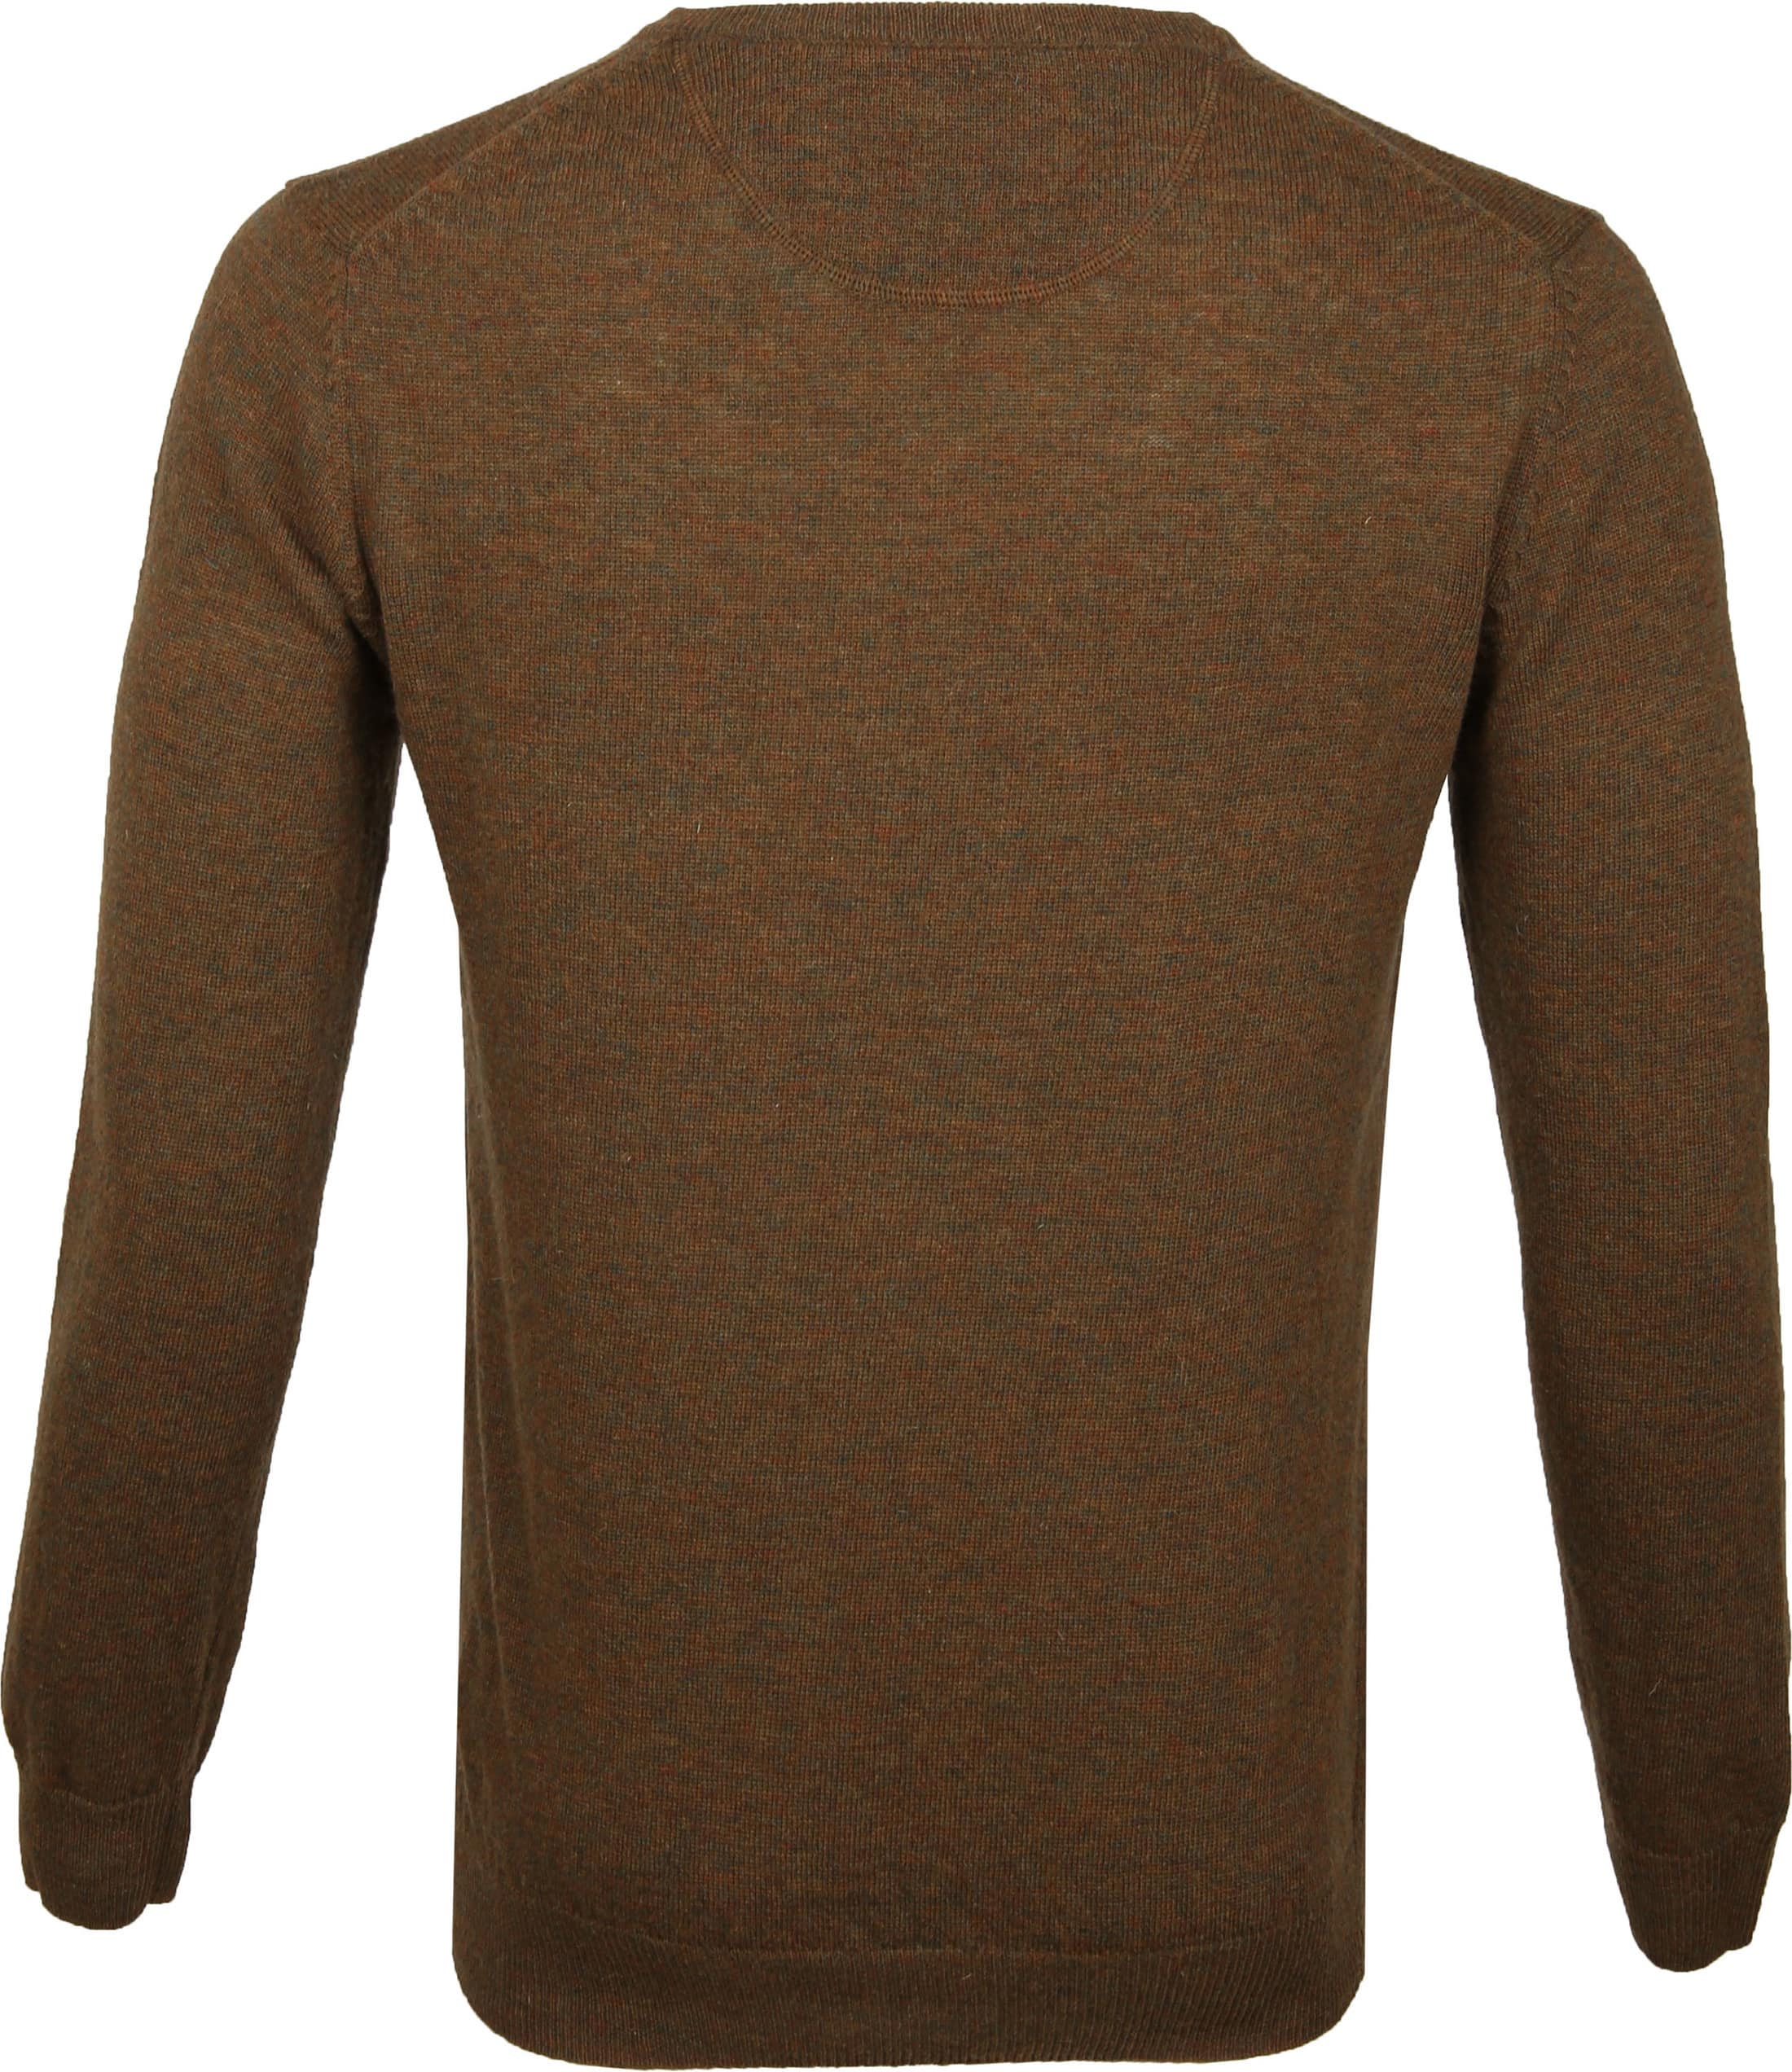 Suitable Pullover V-Neck Lambswool Brown foto 4